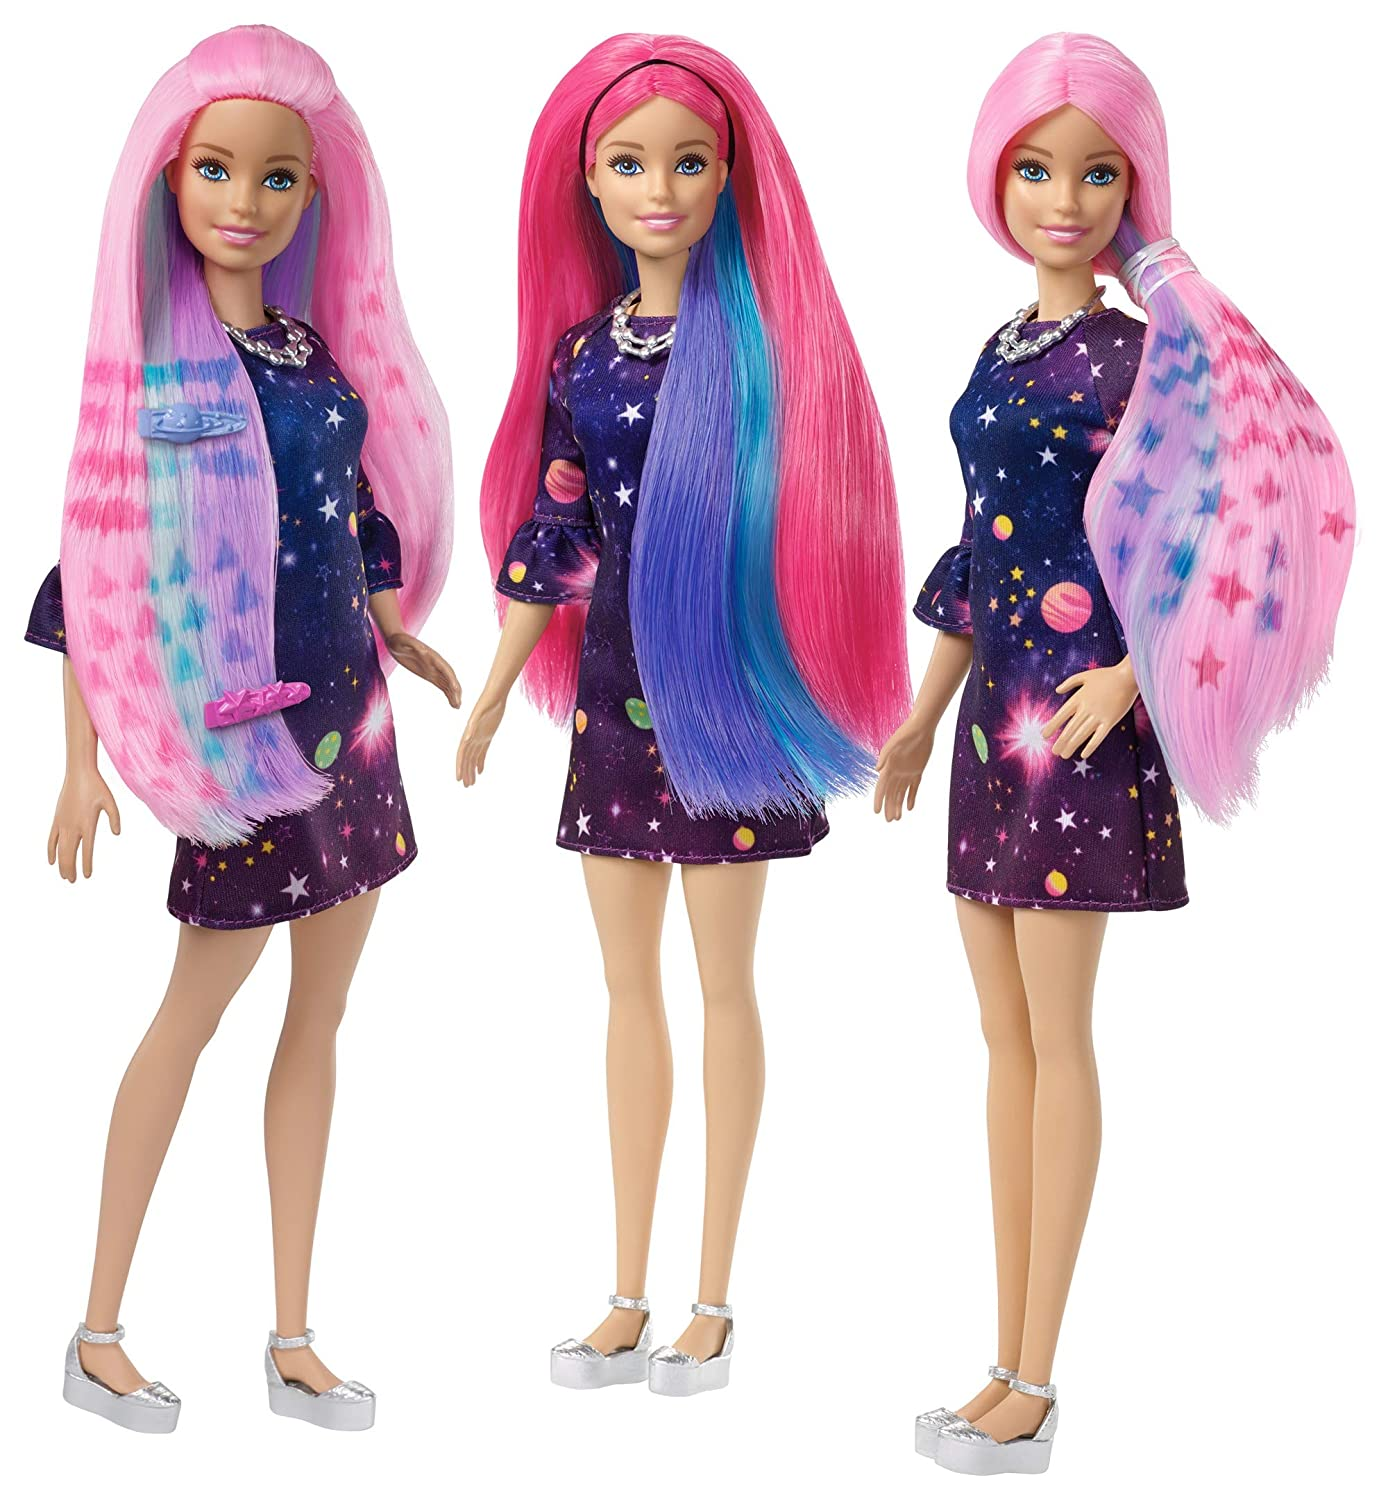 0f86be2e27fb9 Barbie FHX00 FASHION AND BEAUTY Feature Doll Colourful Long, Pattern  Activated Hair and Fabulous Accessories